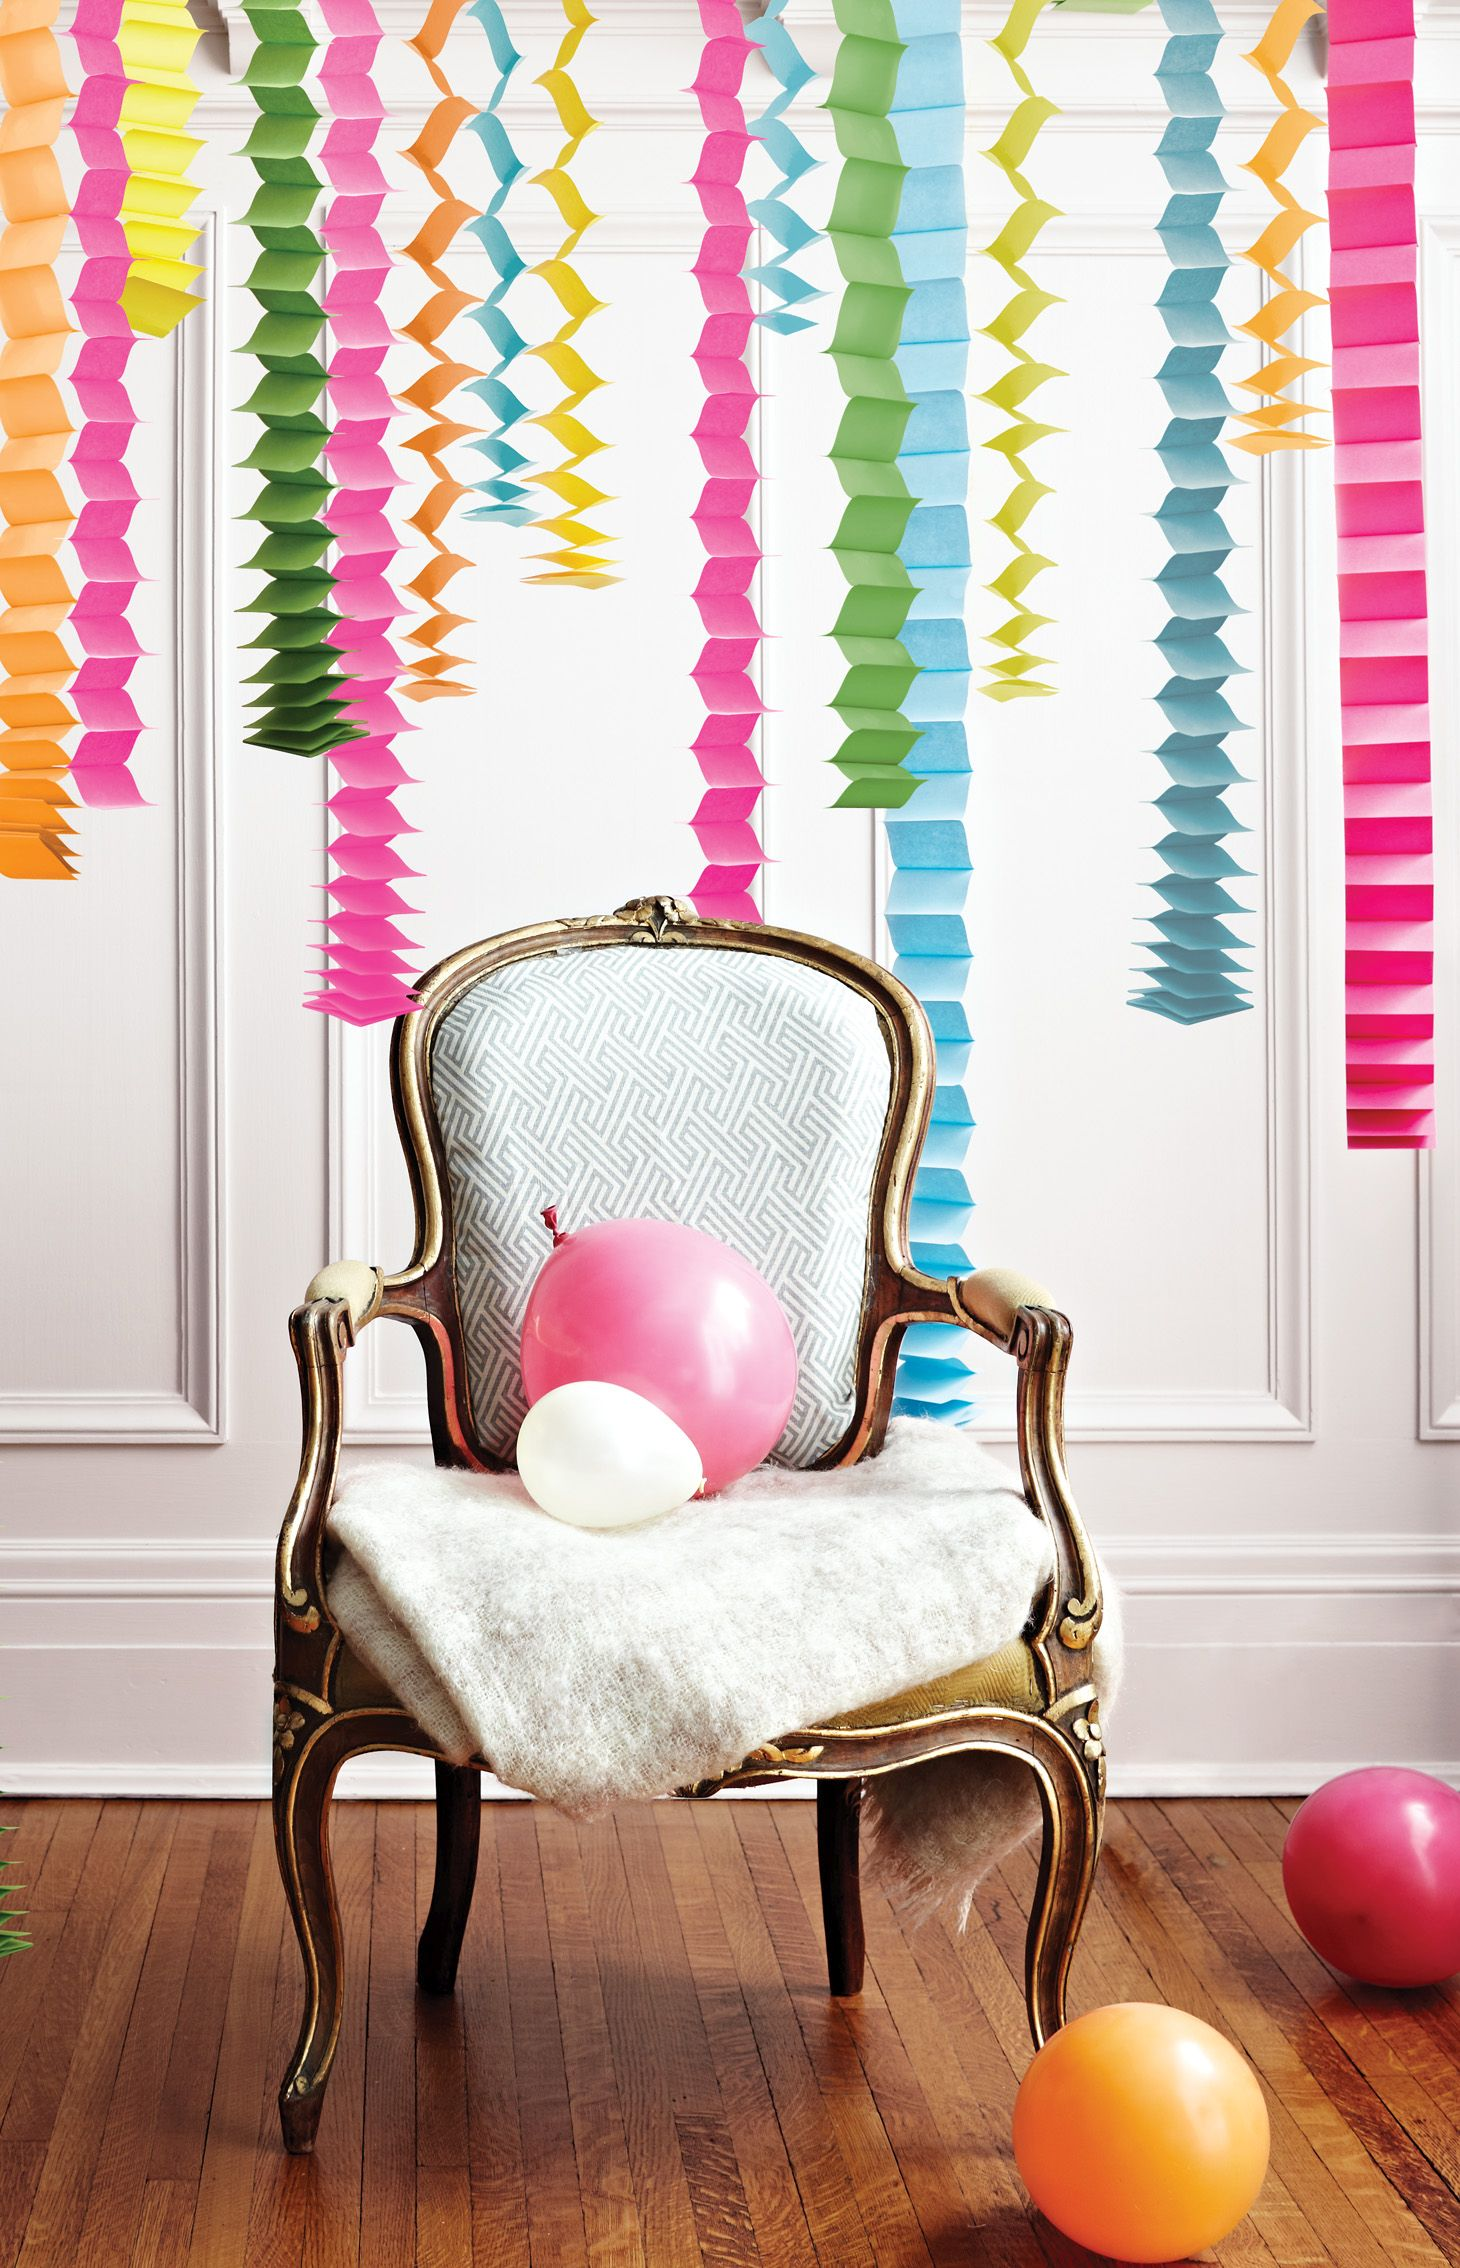 Creating a housewarming party with diy decorations for Party decorations to make at home